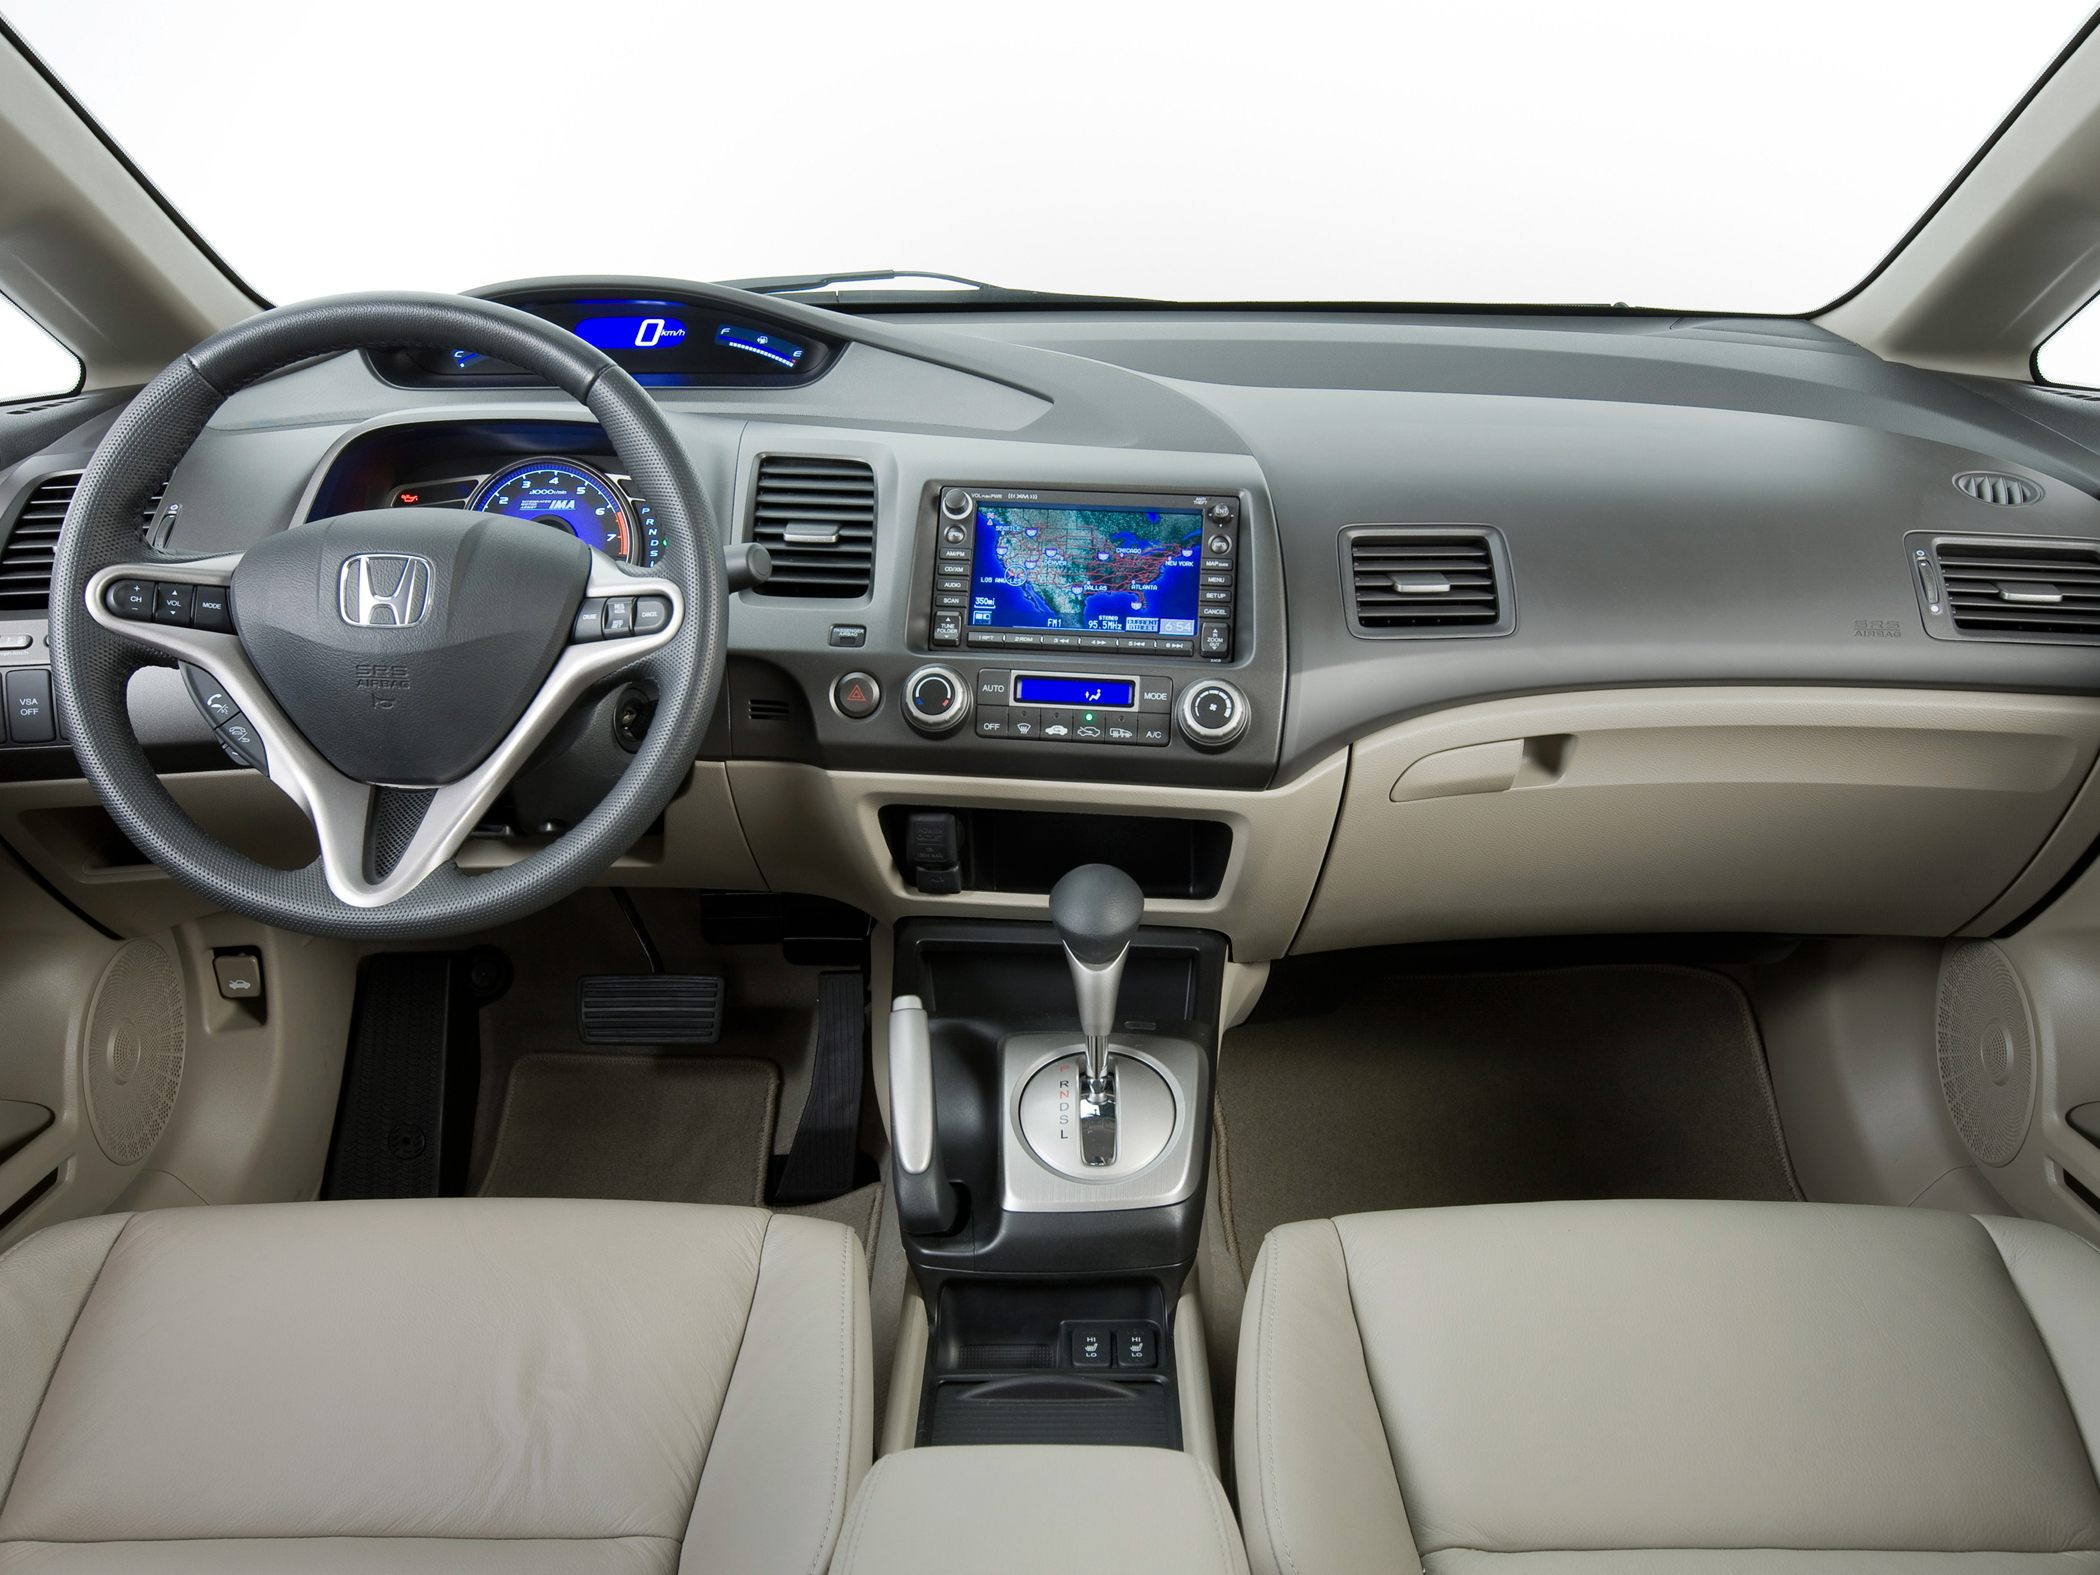 Honda Civic 2010 #7